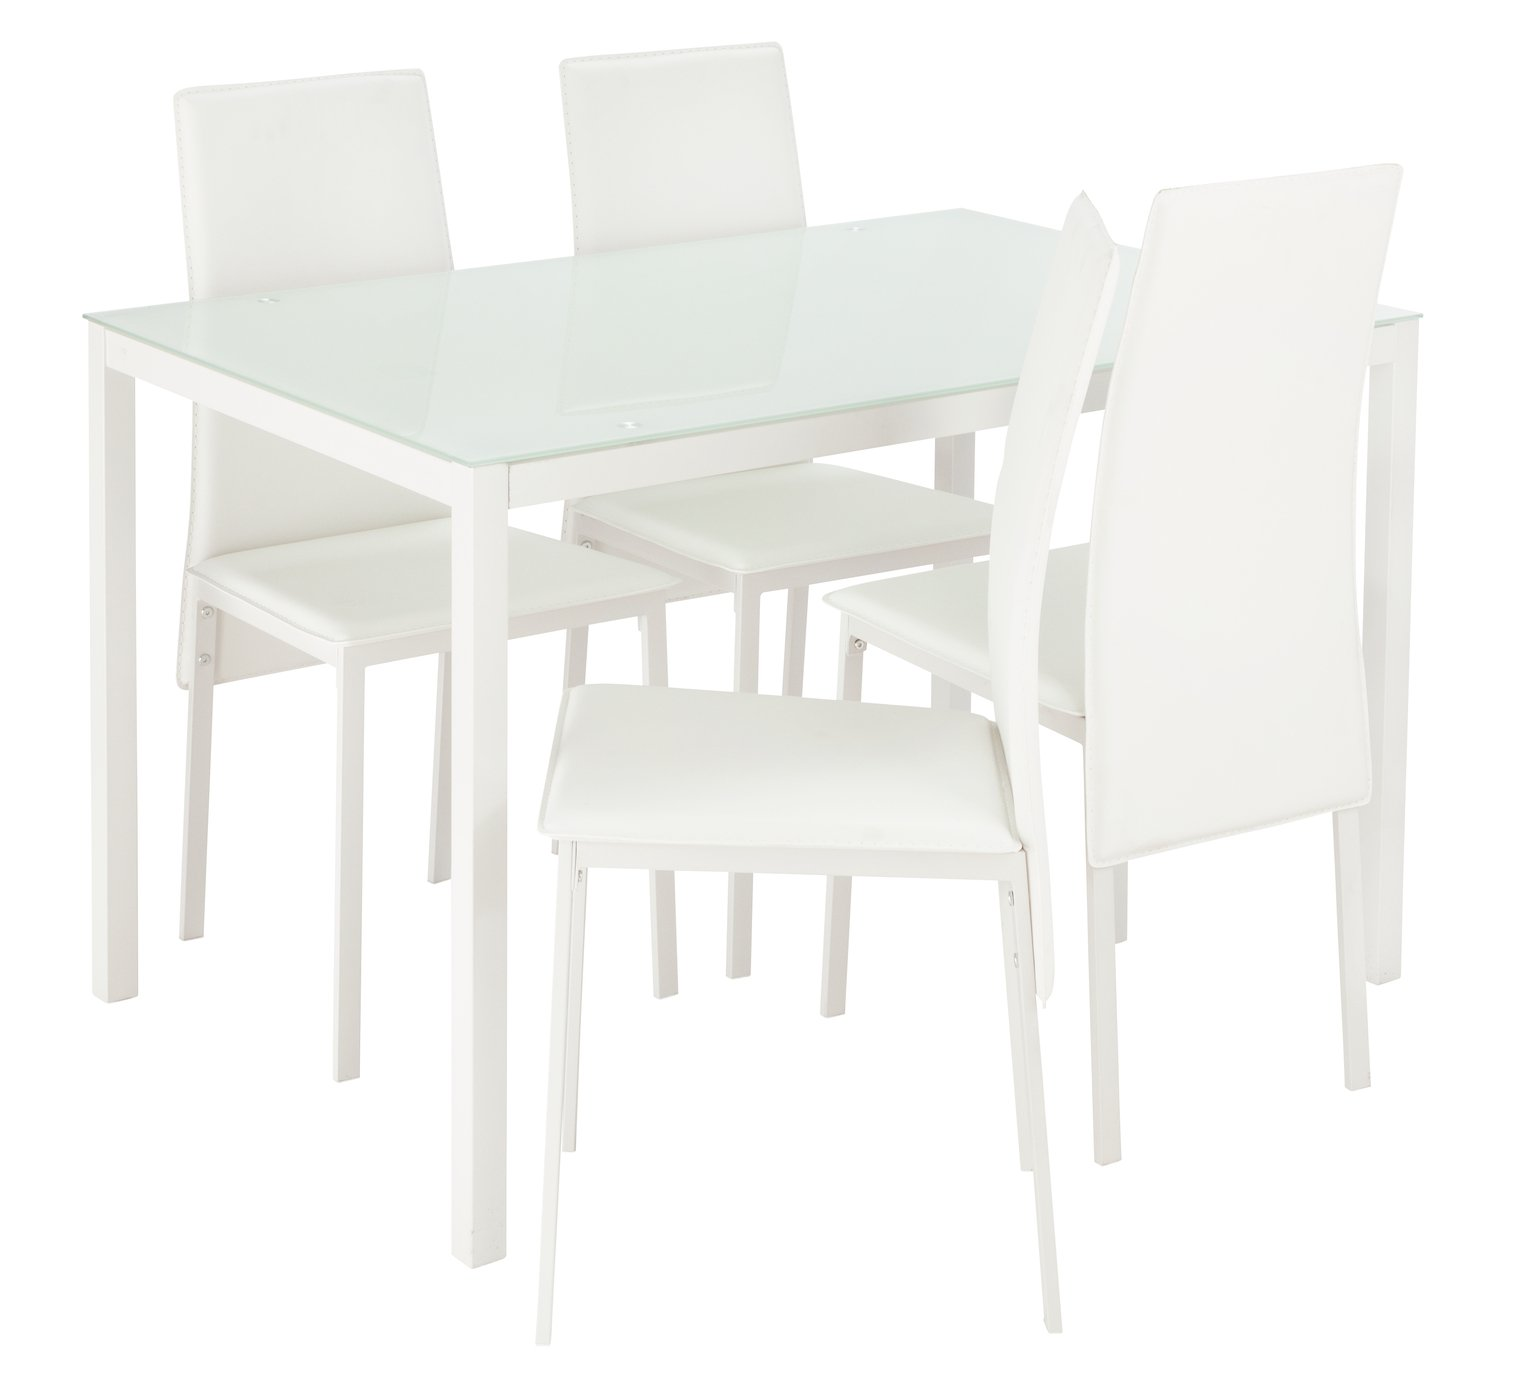 Buy Argos Home Lido Glass Dining Table 4 Chairs White Dining